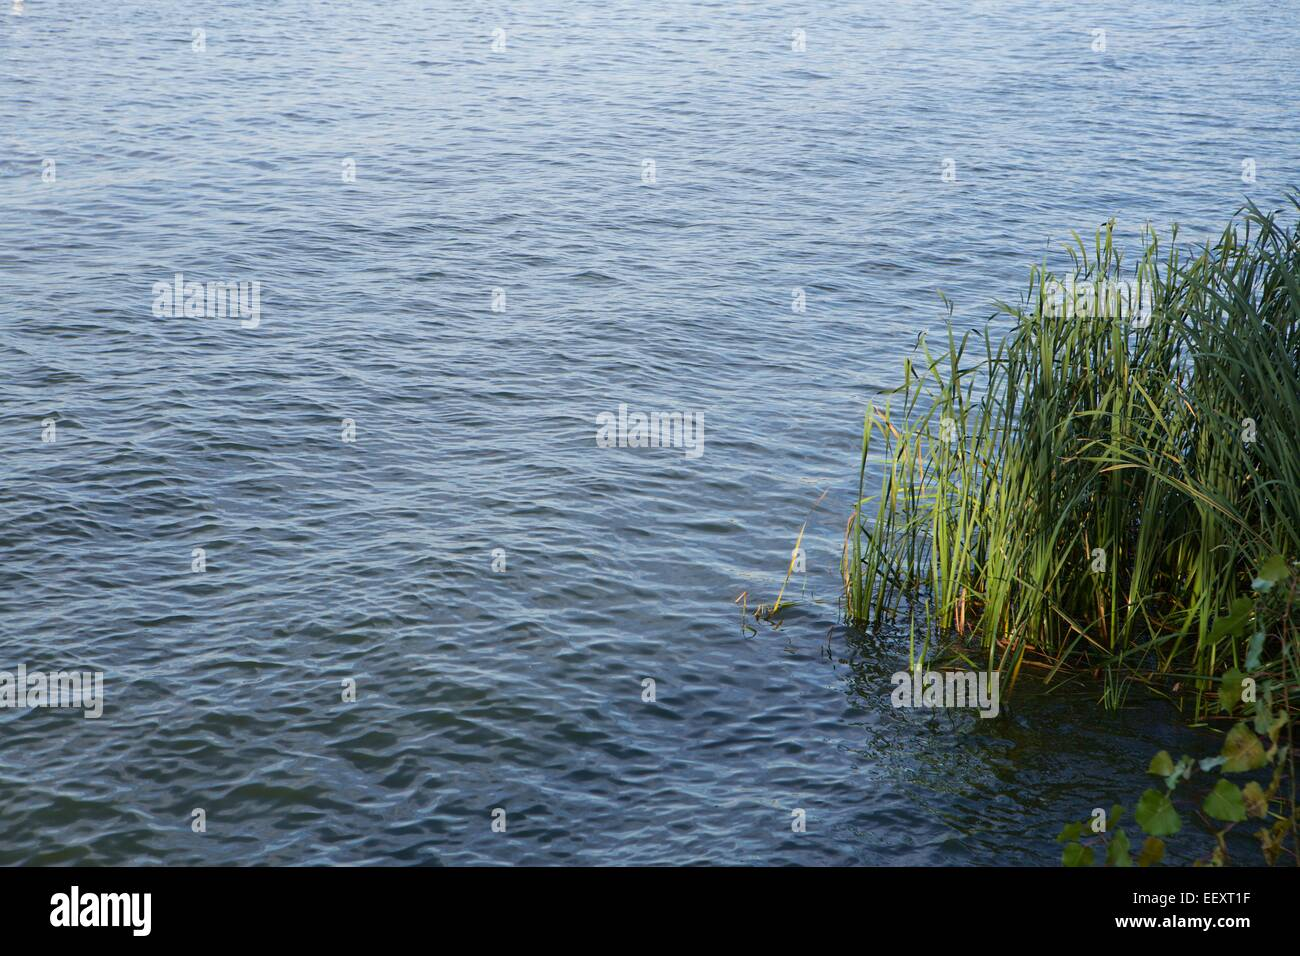 late afternoon sunlight hits a clump of grass in rippled water - Stock Image